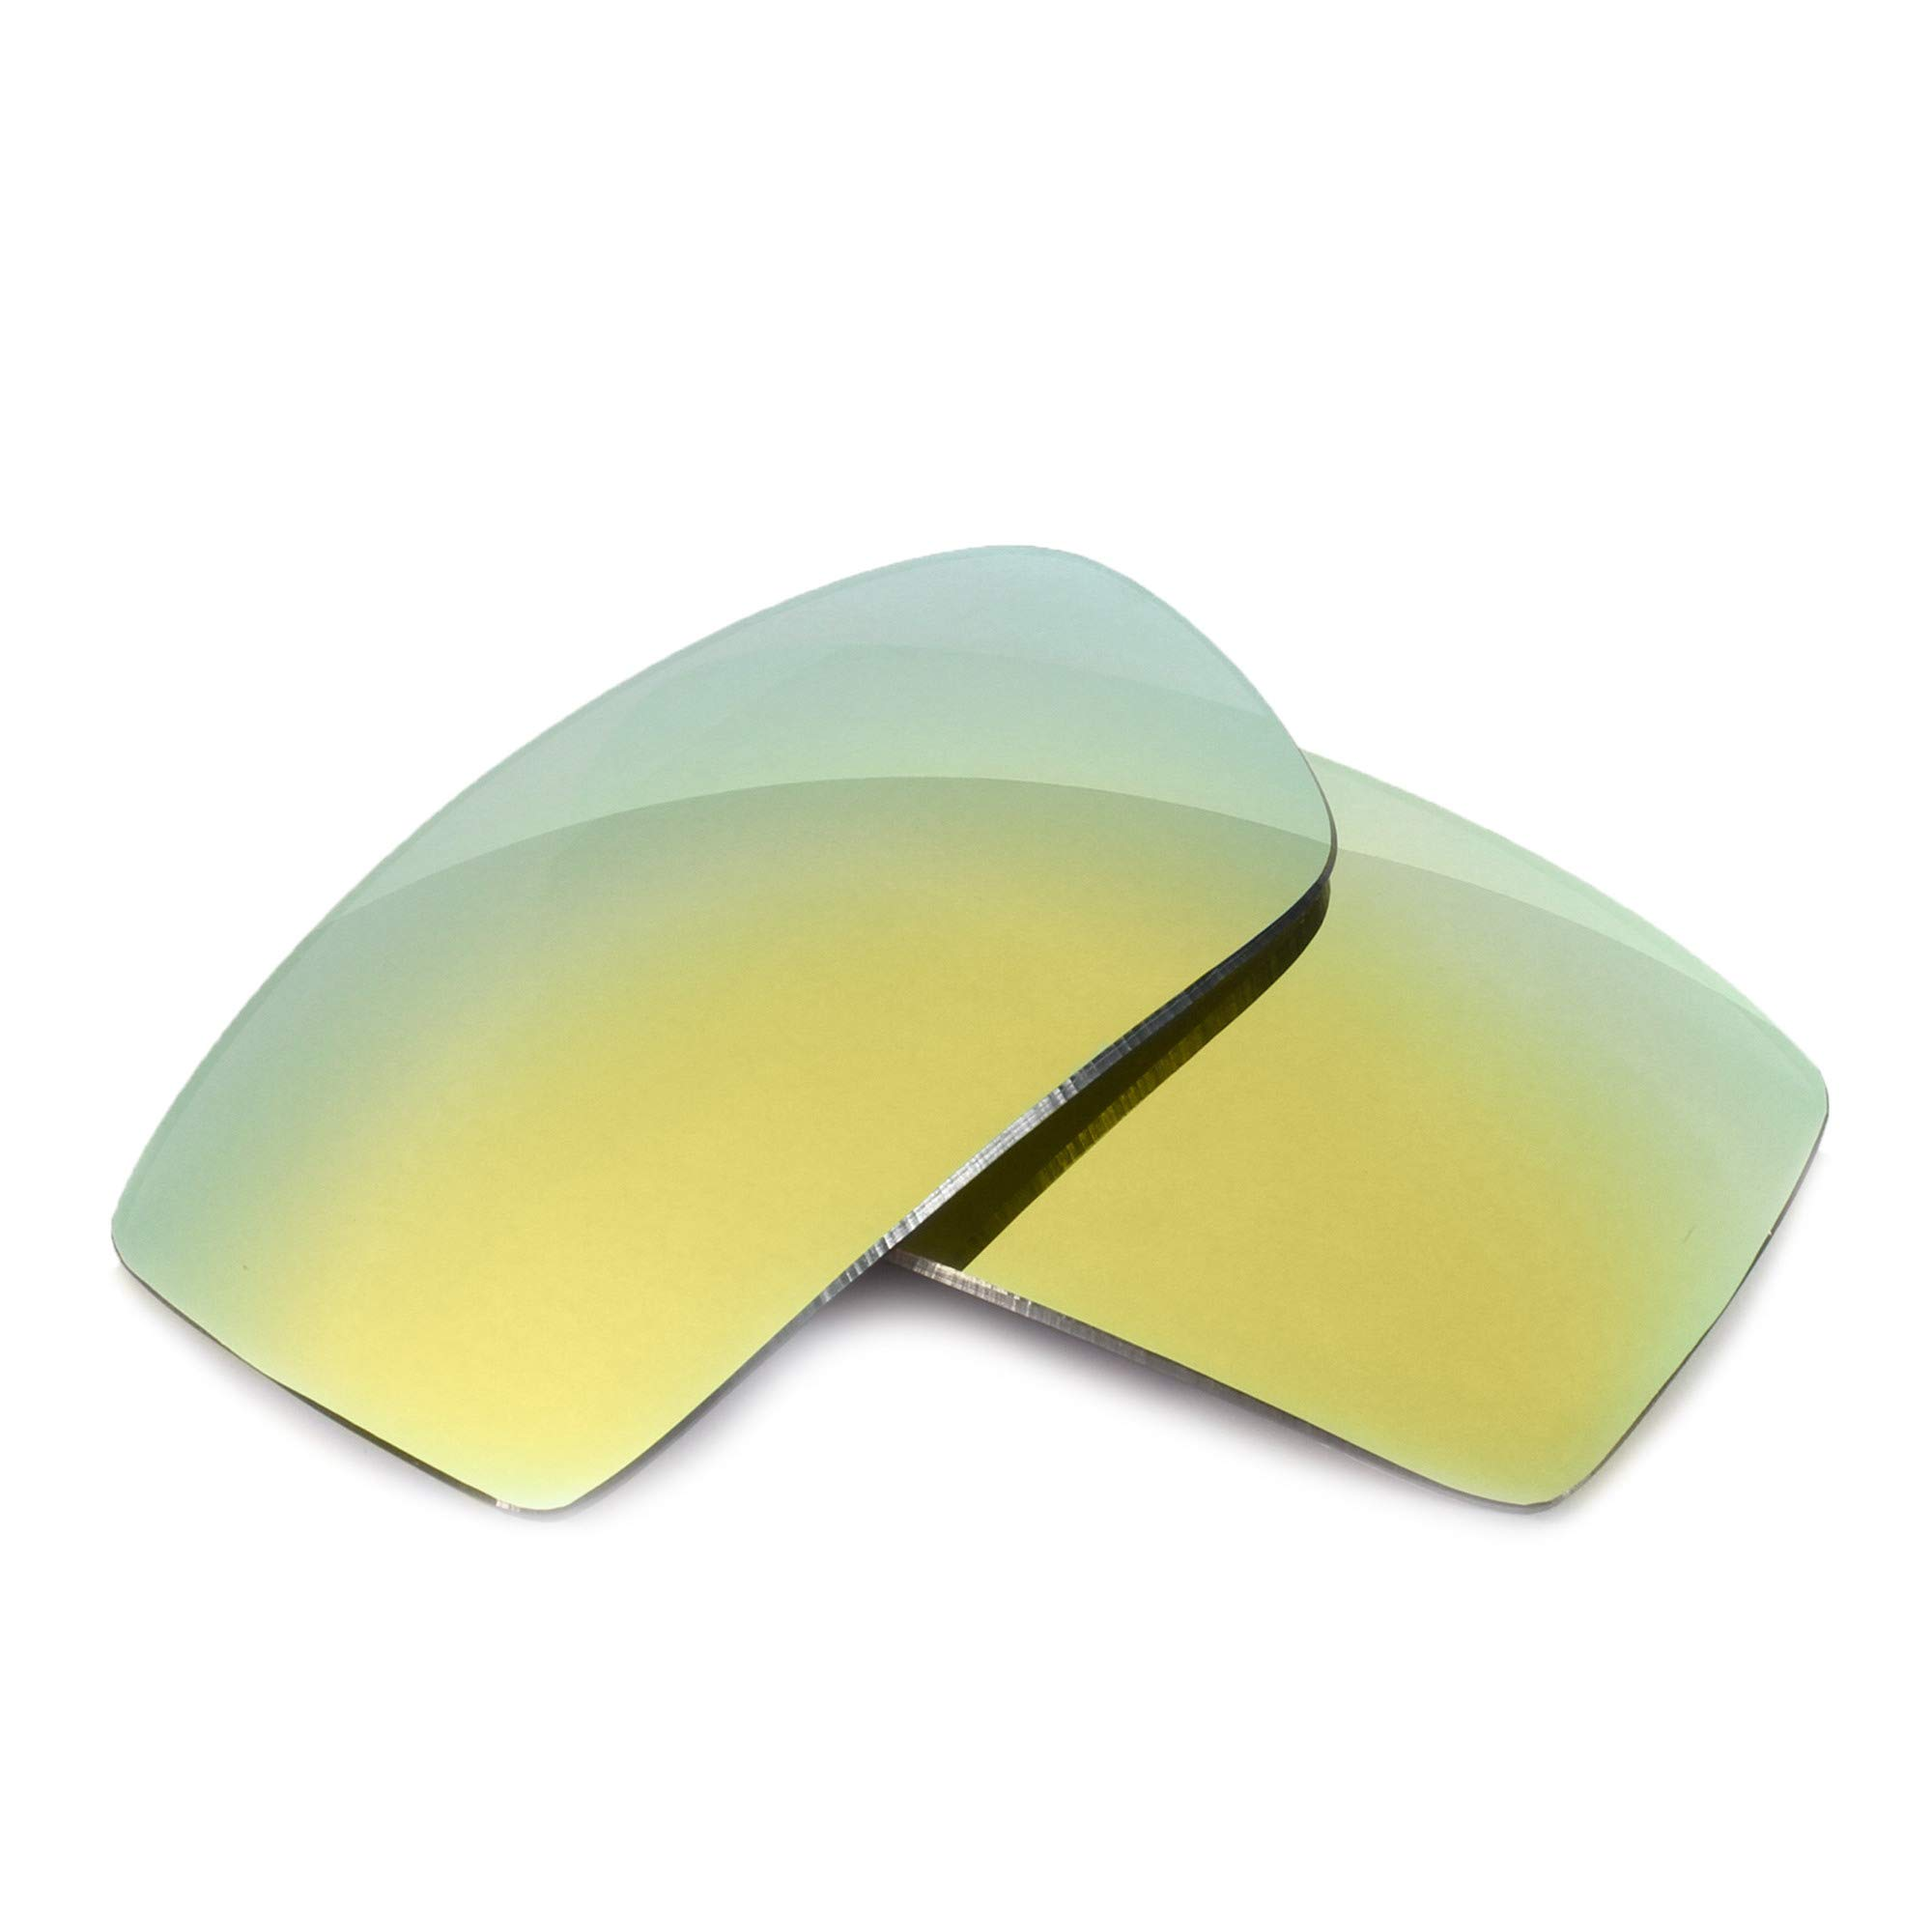 7ace155f24e32 Fuse Lenses Polarized Replacement Lenses for Oakley Crosslink (53mm)